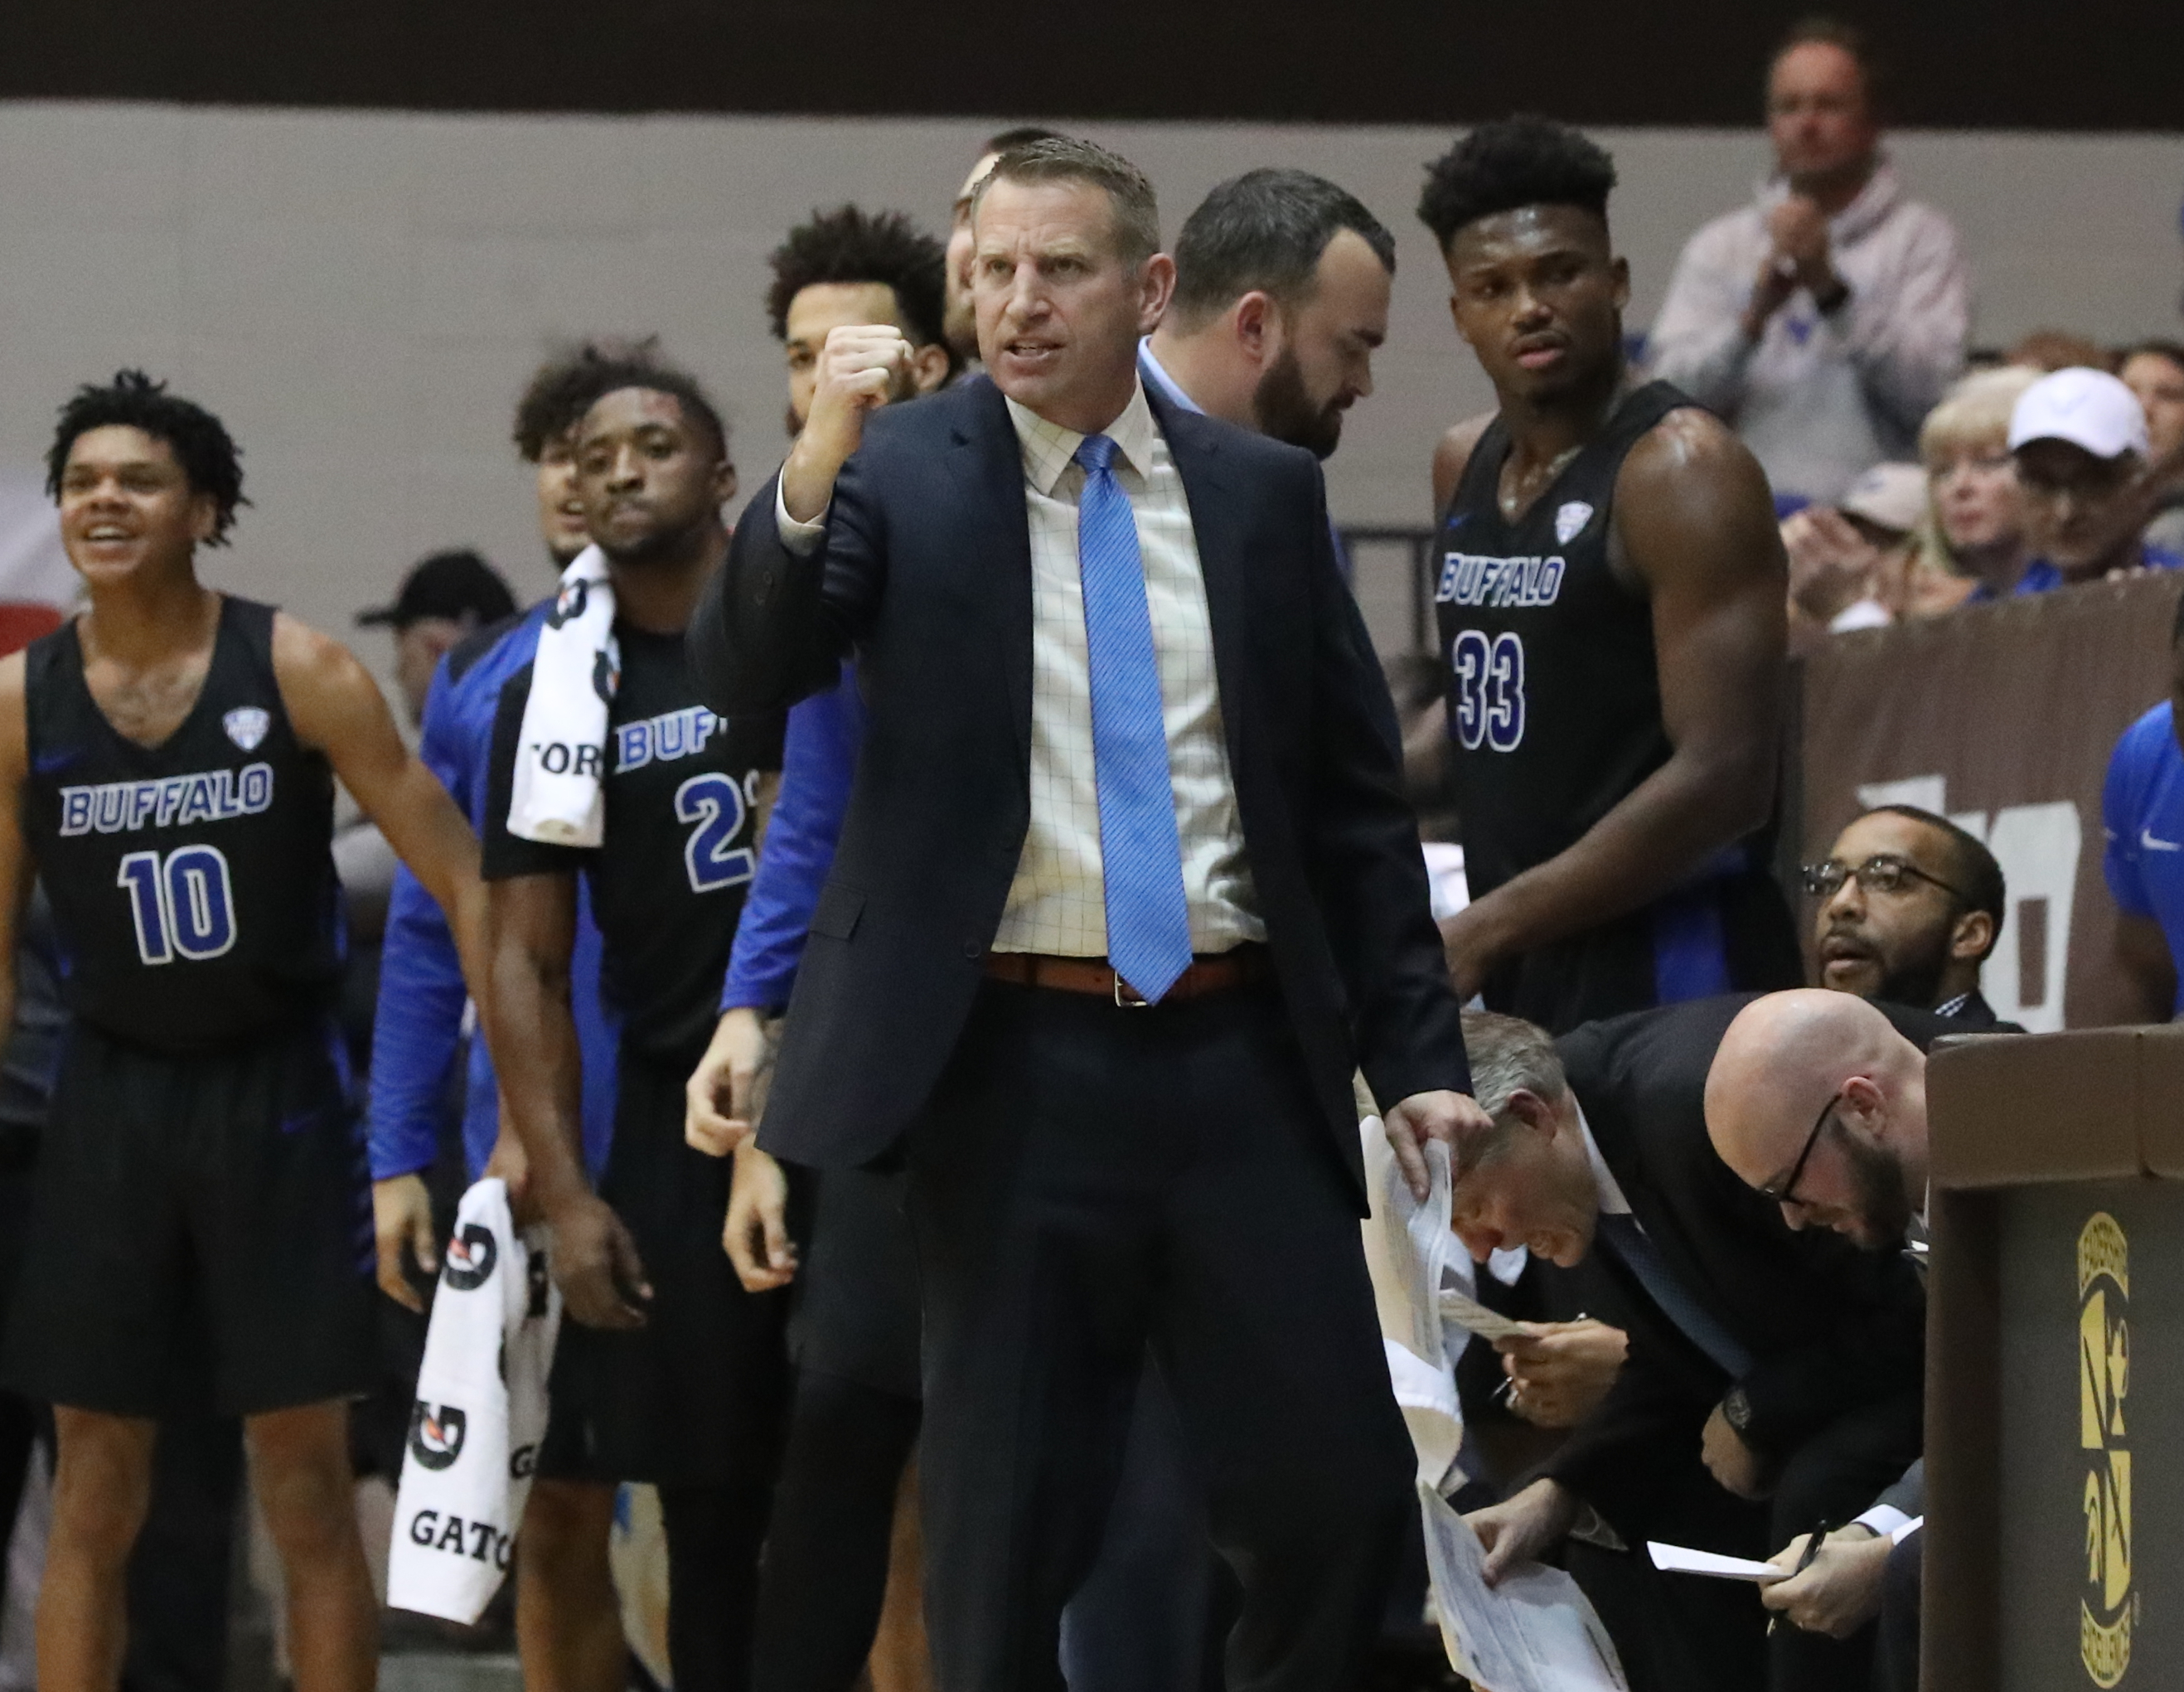 UB coach Nate Oats gets Bona fans' attention with tweet